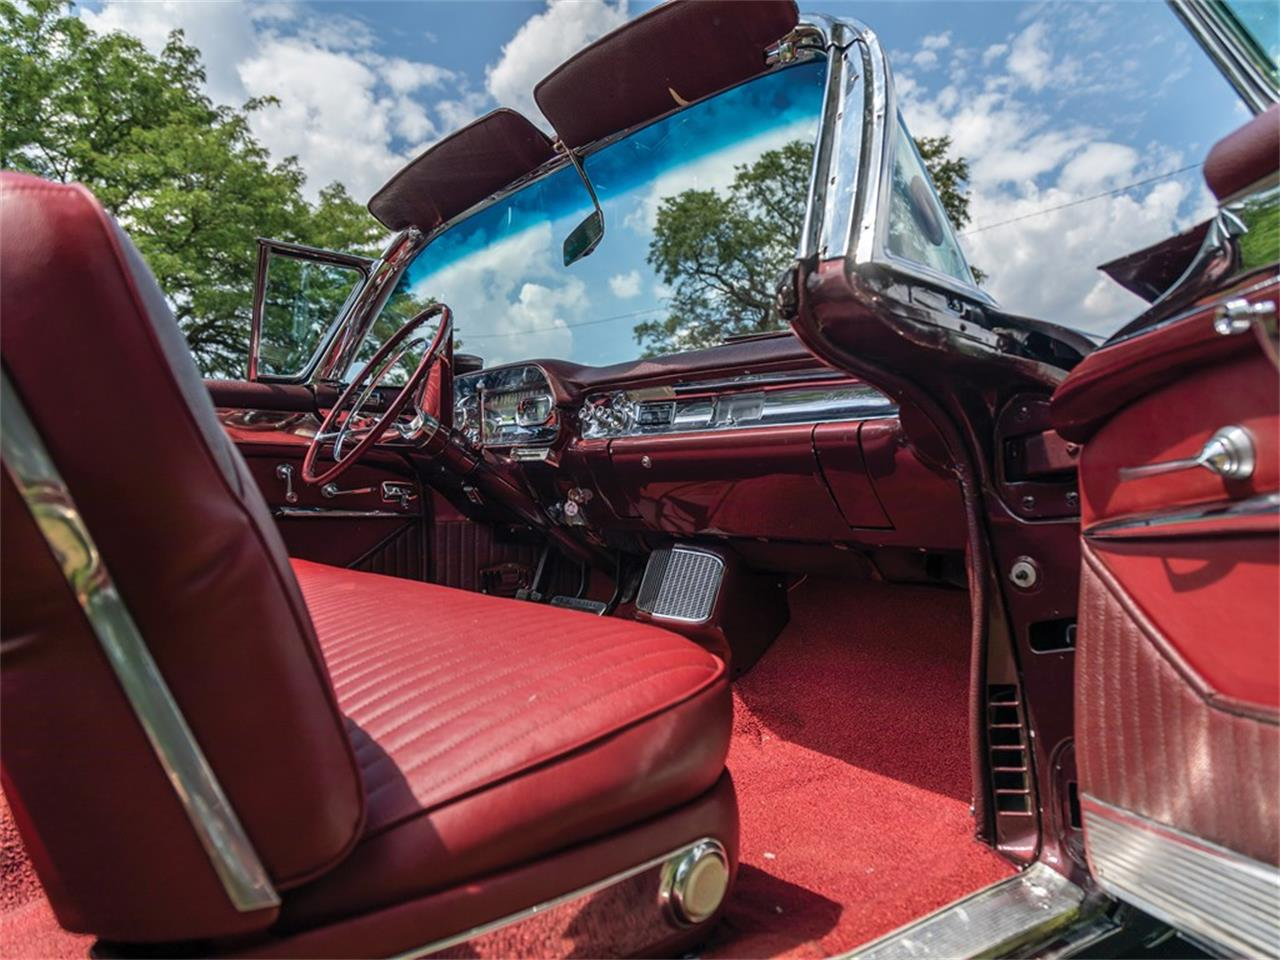 1957 Cadillac Eldorado Biarritz for sale in Auburn, IN – photo 13